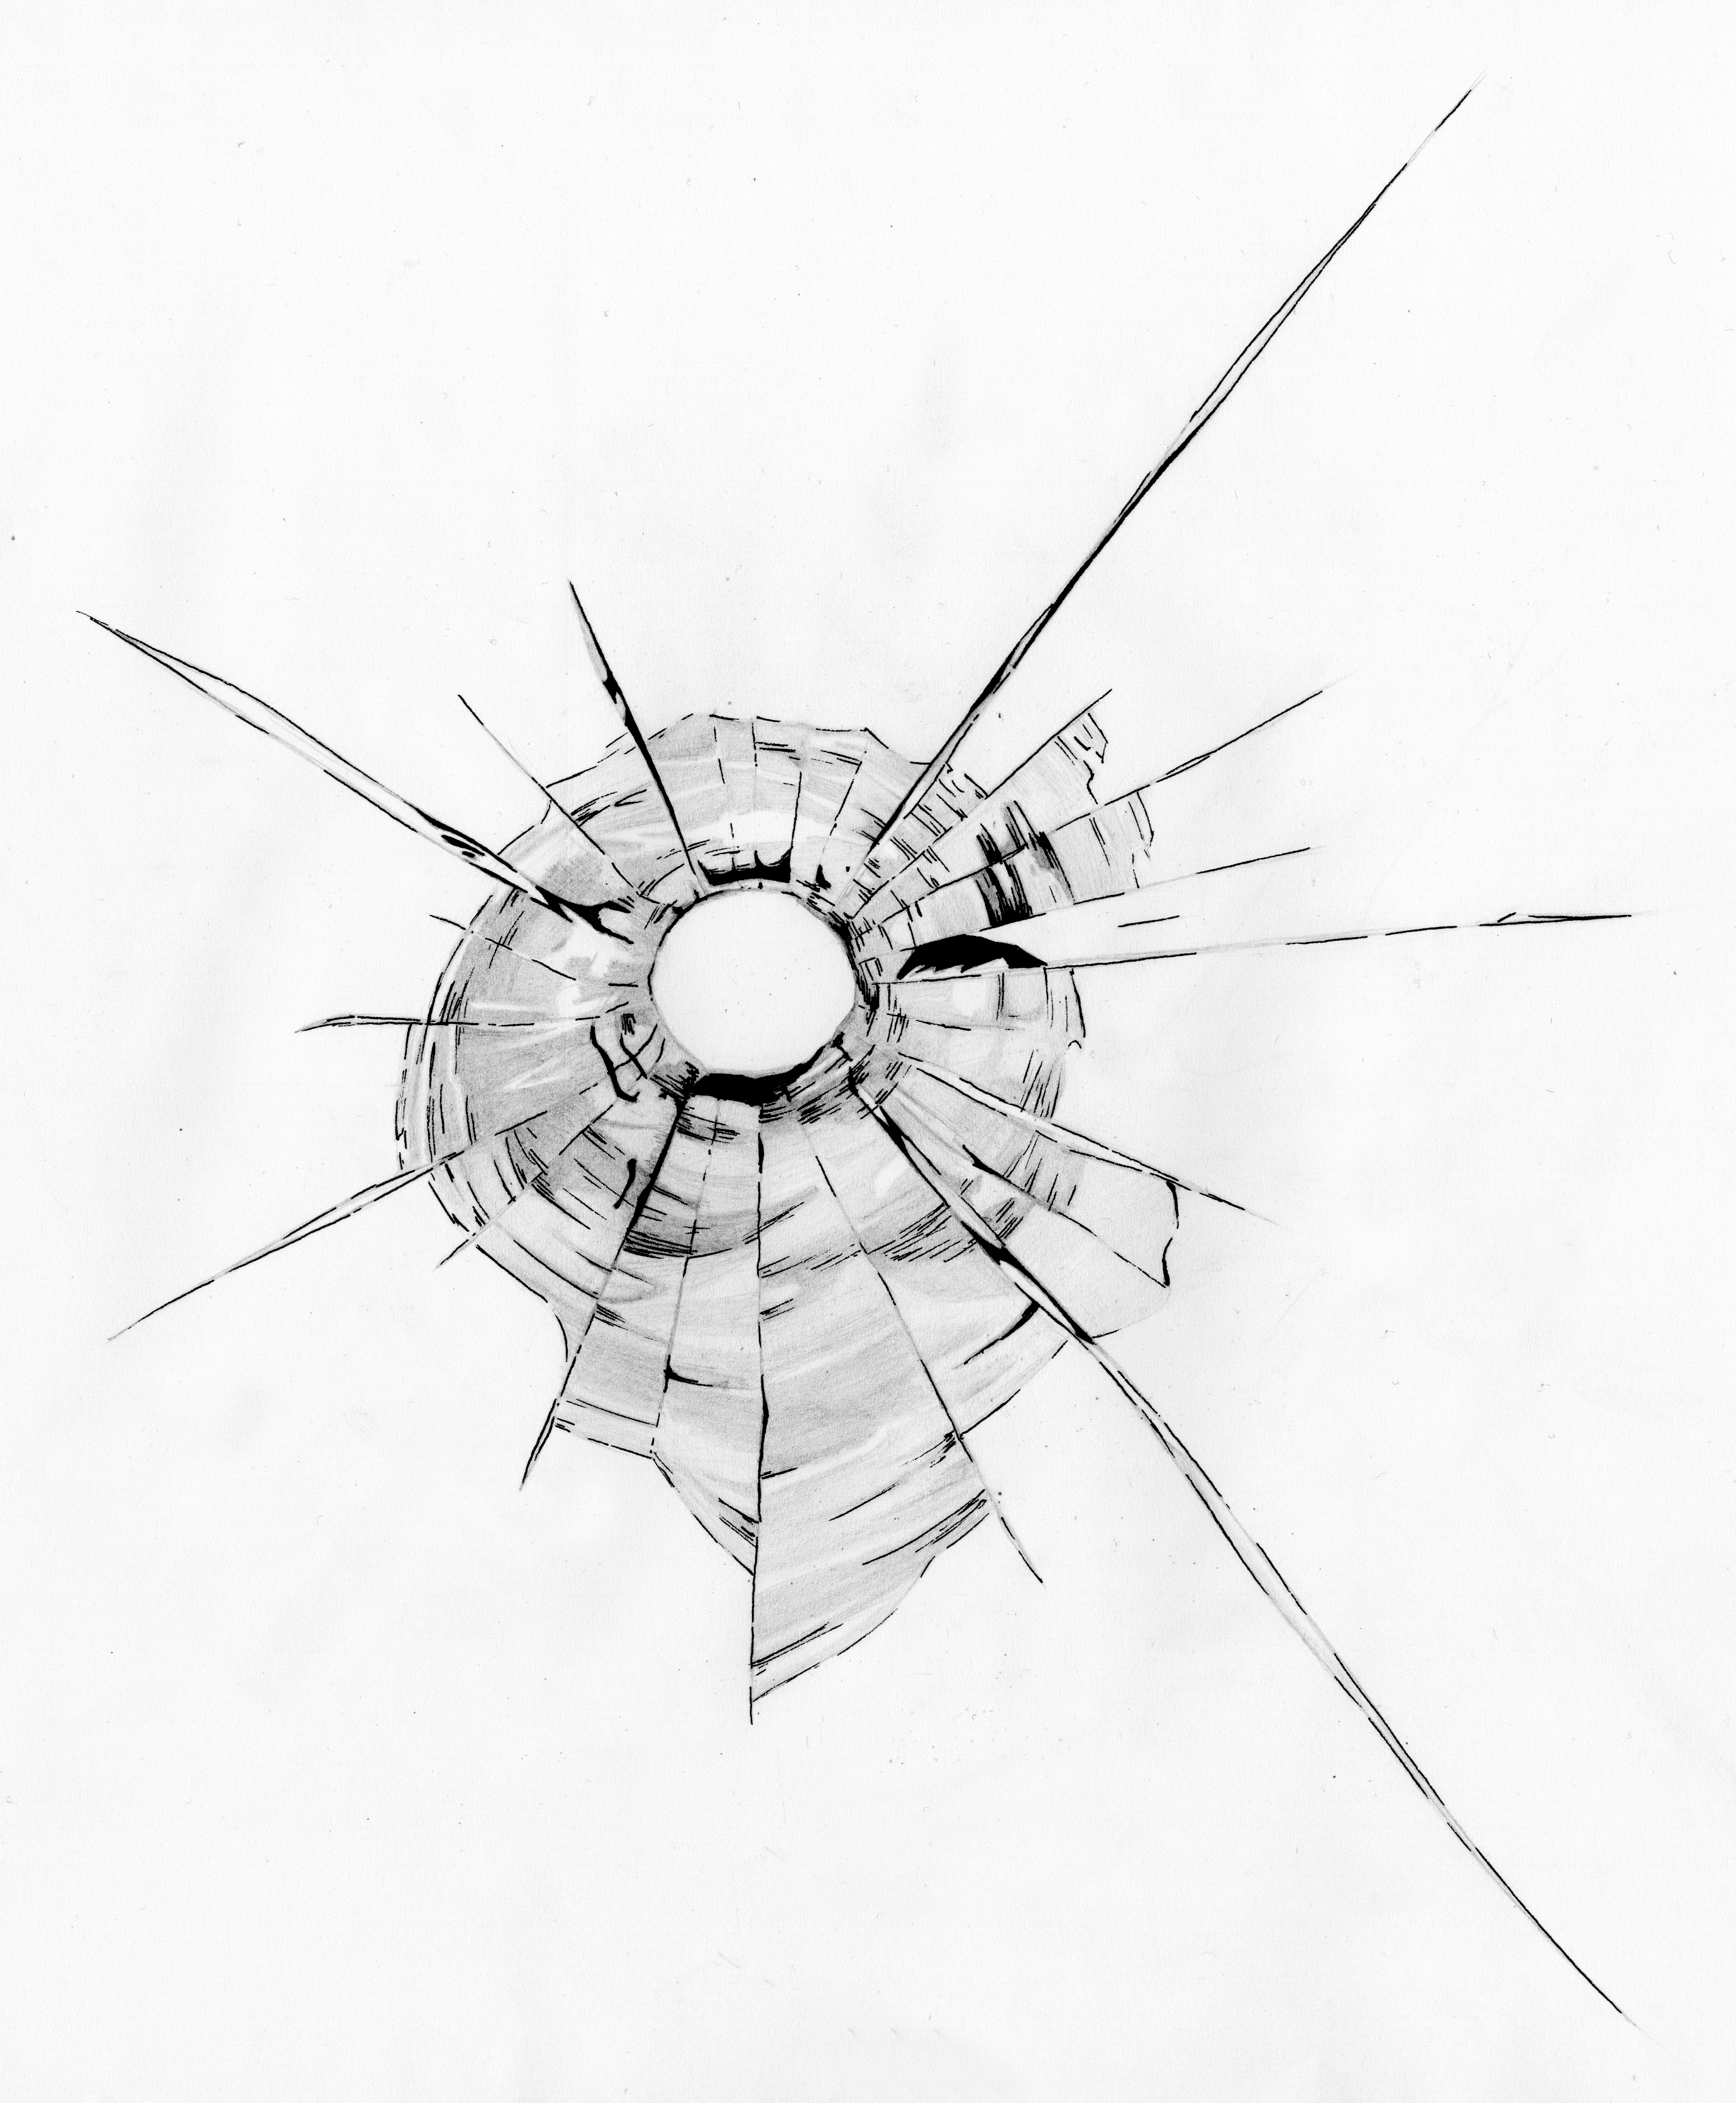 Free Bullet Hole Glass Png, Download Free Clip Art, Free.